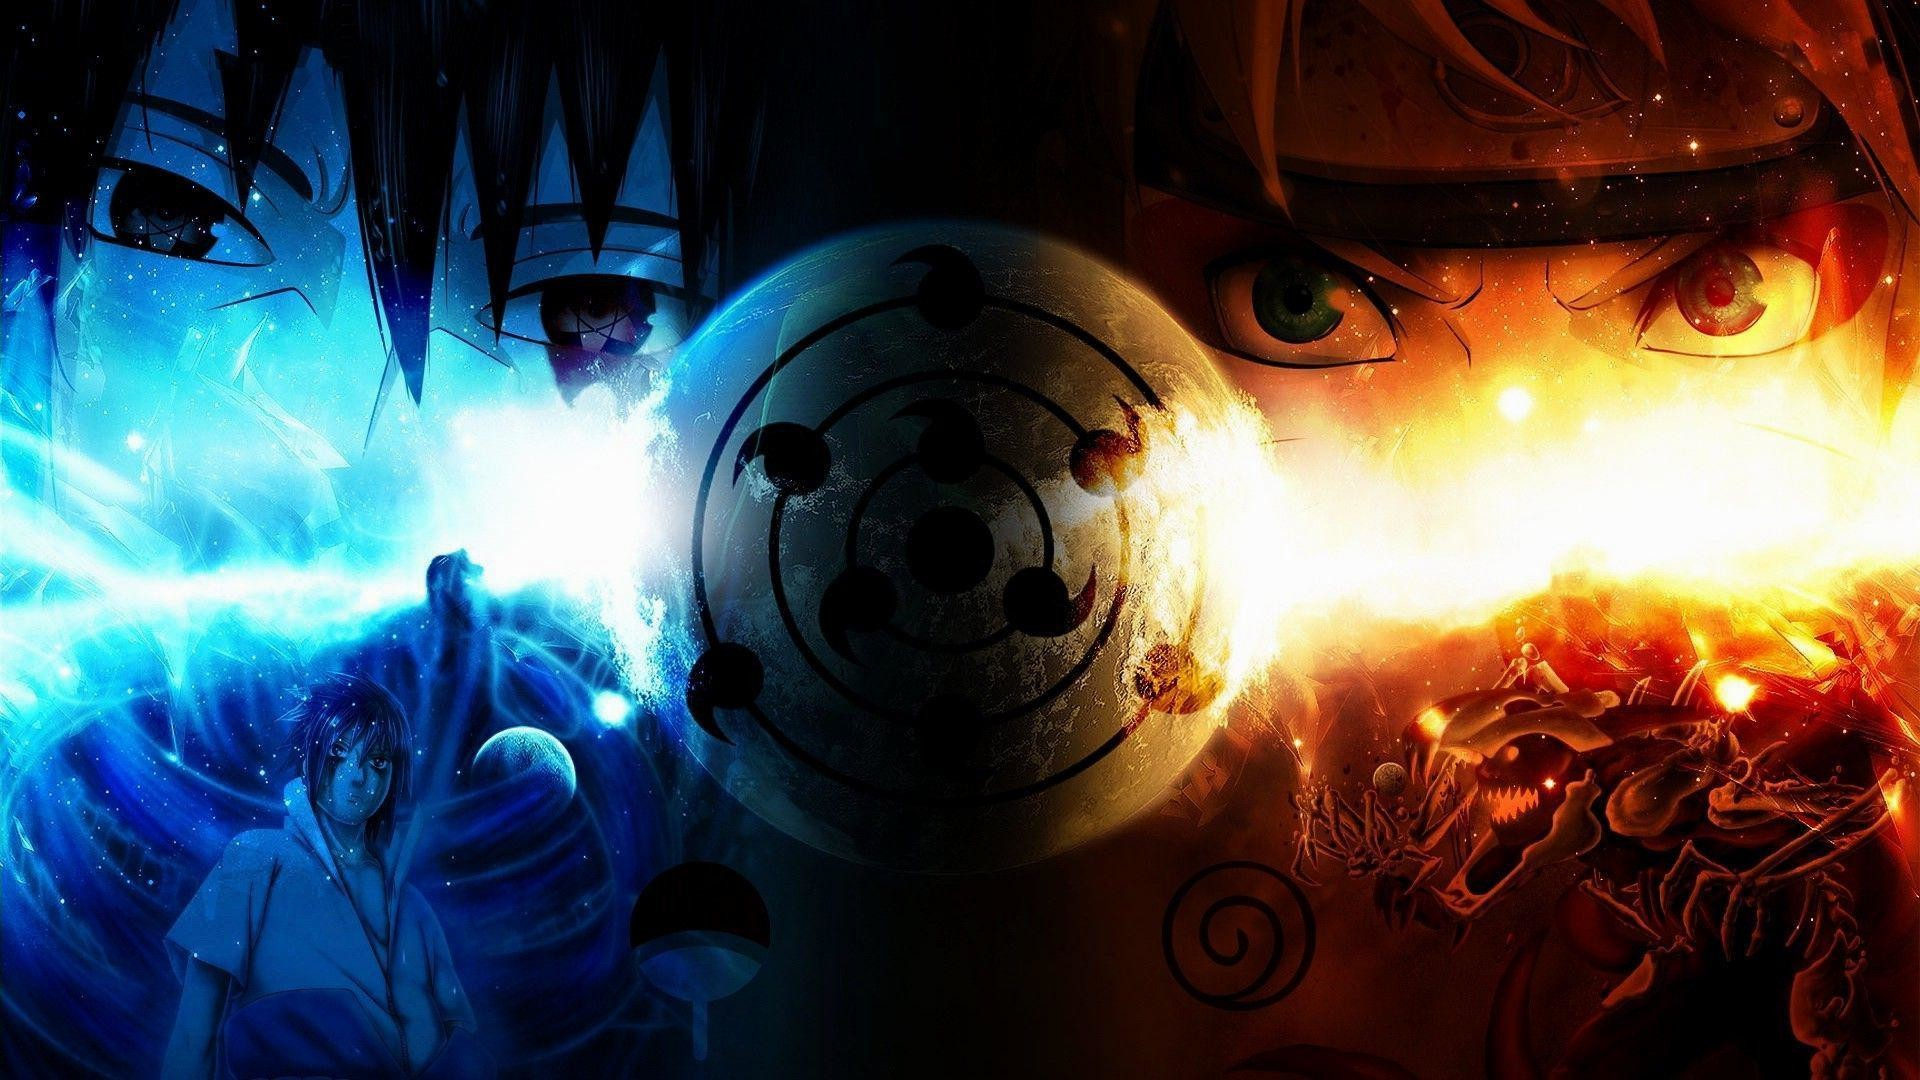 1920x1080 wallpaper.wiki-Naruto-fire-and-ice-hd-anime-wallpaper -1920×1080-PIC-WPE0014120